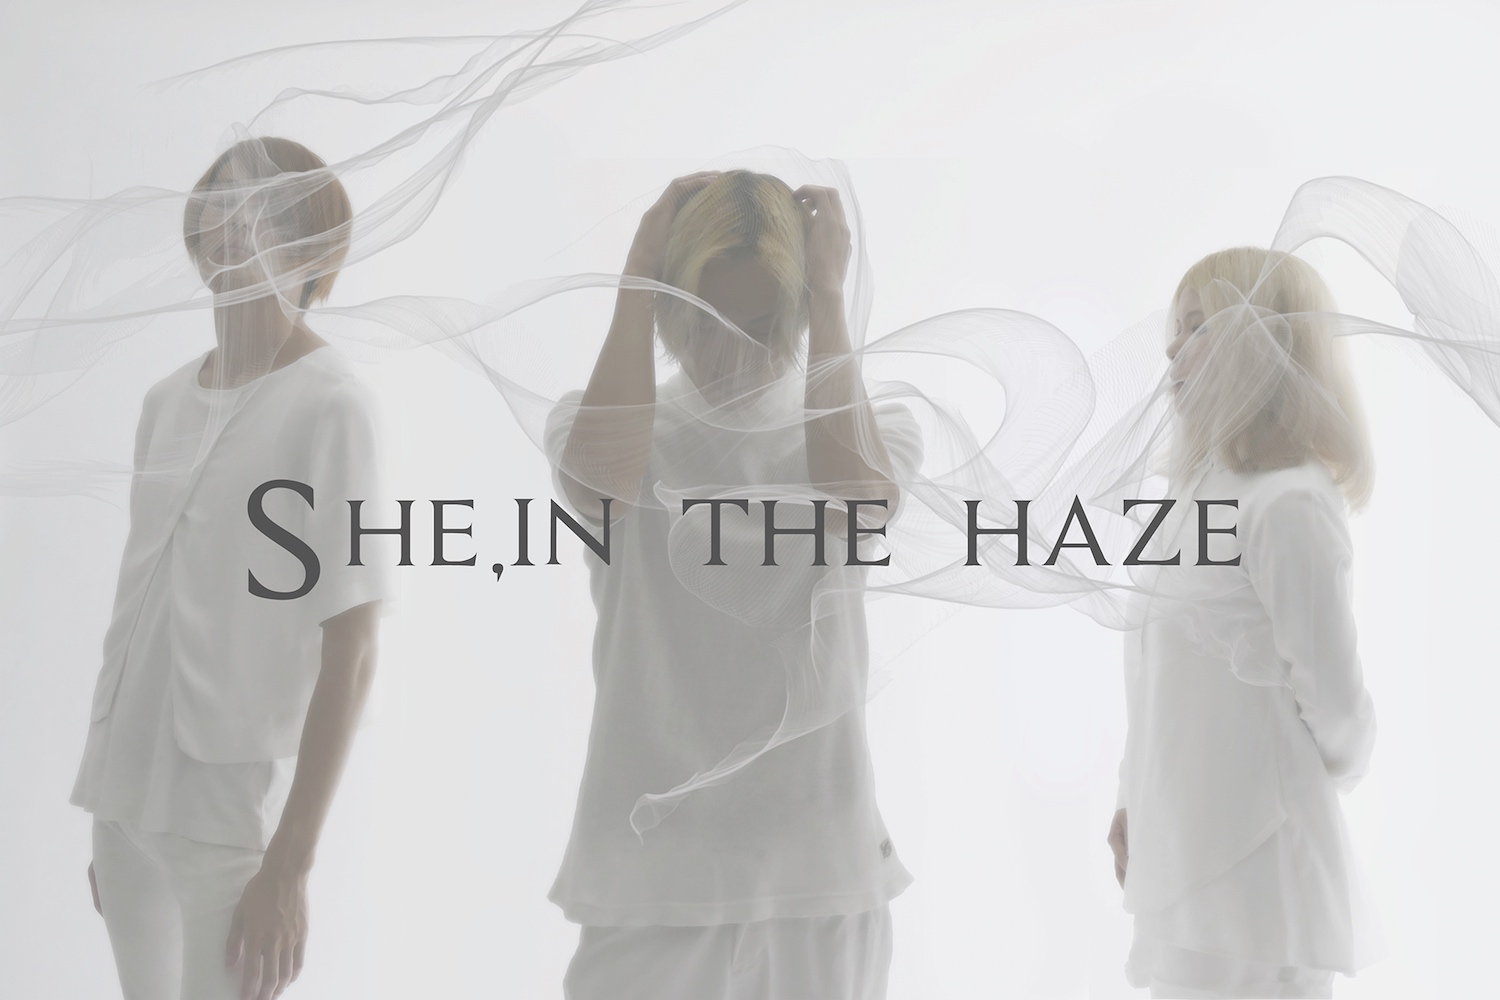 Shein-the-haze.jpg